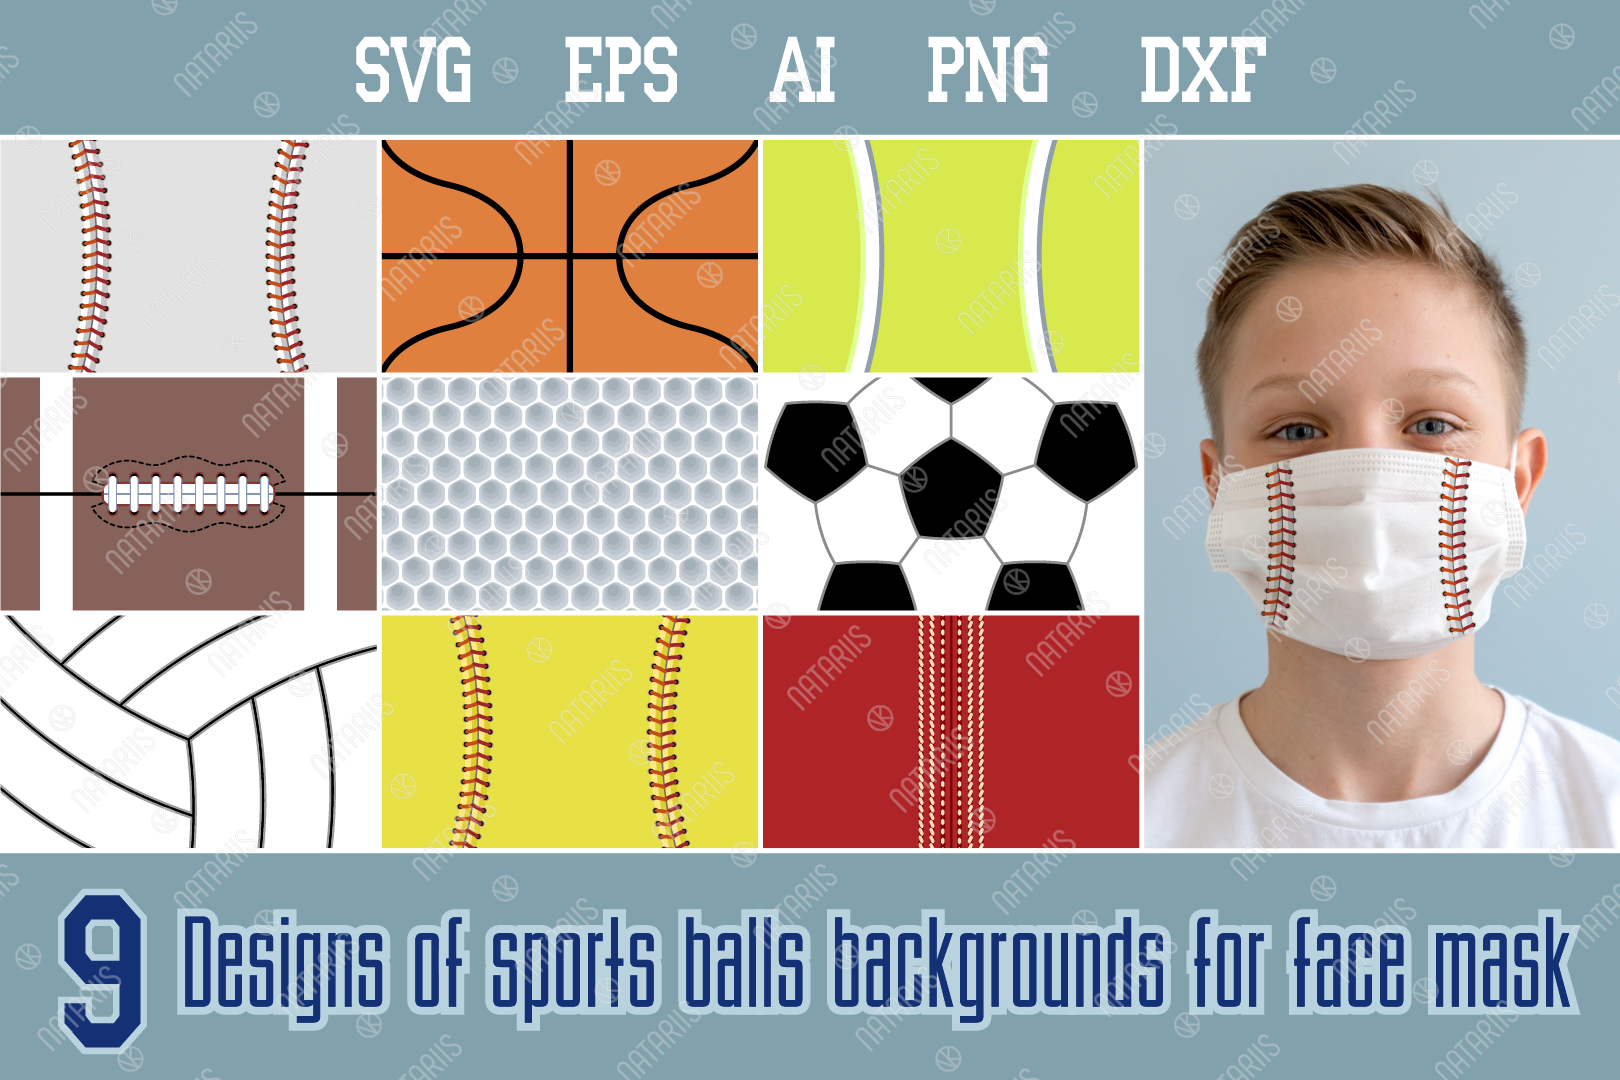 Download Free 9 Design Of Sports Balls Backgrounds Graphic By Natariis Studio SVG Cut Files